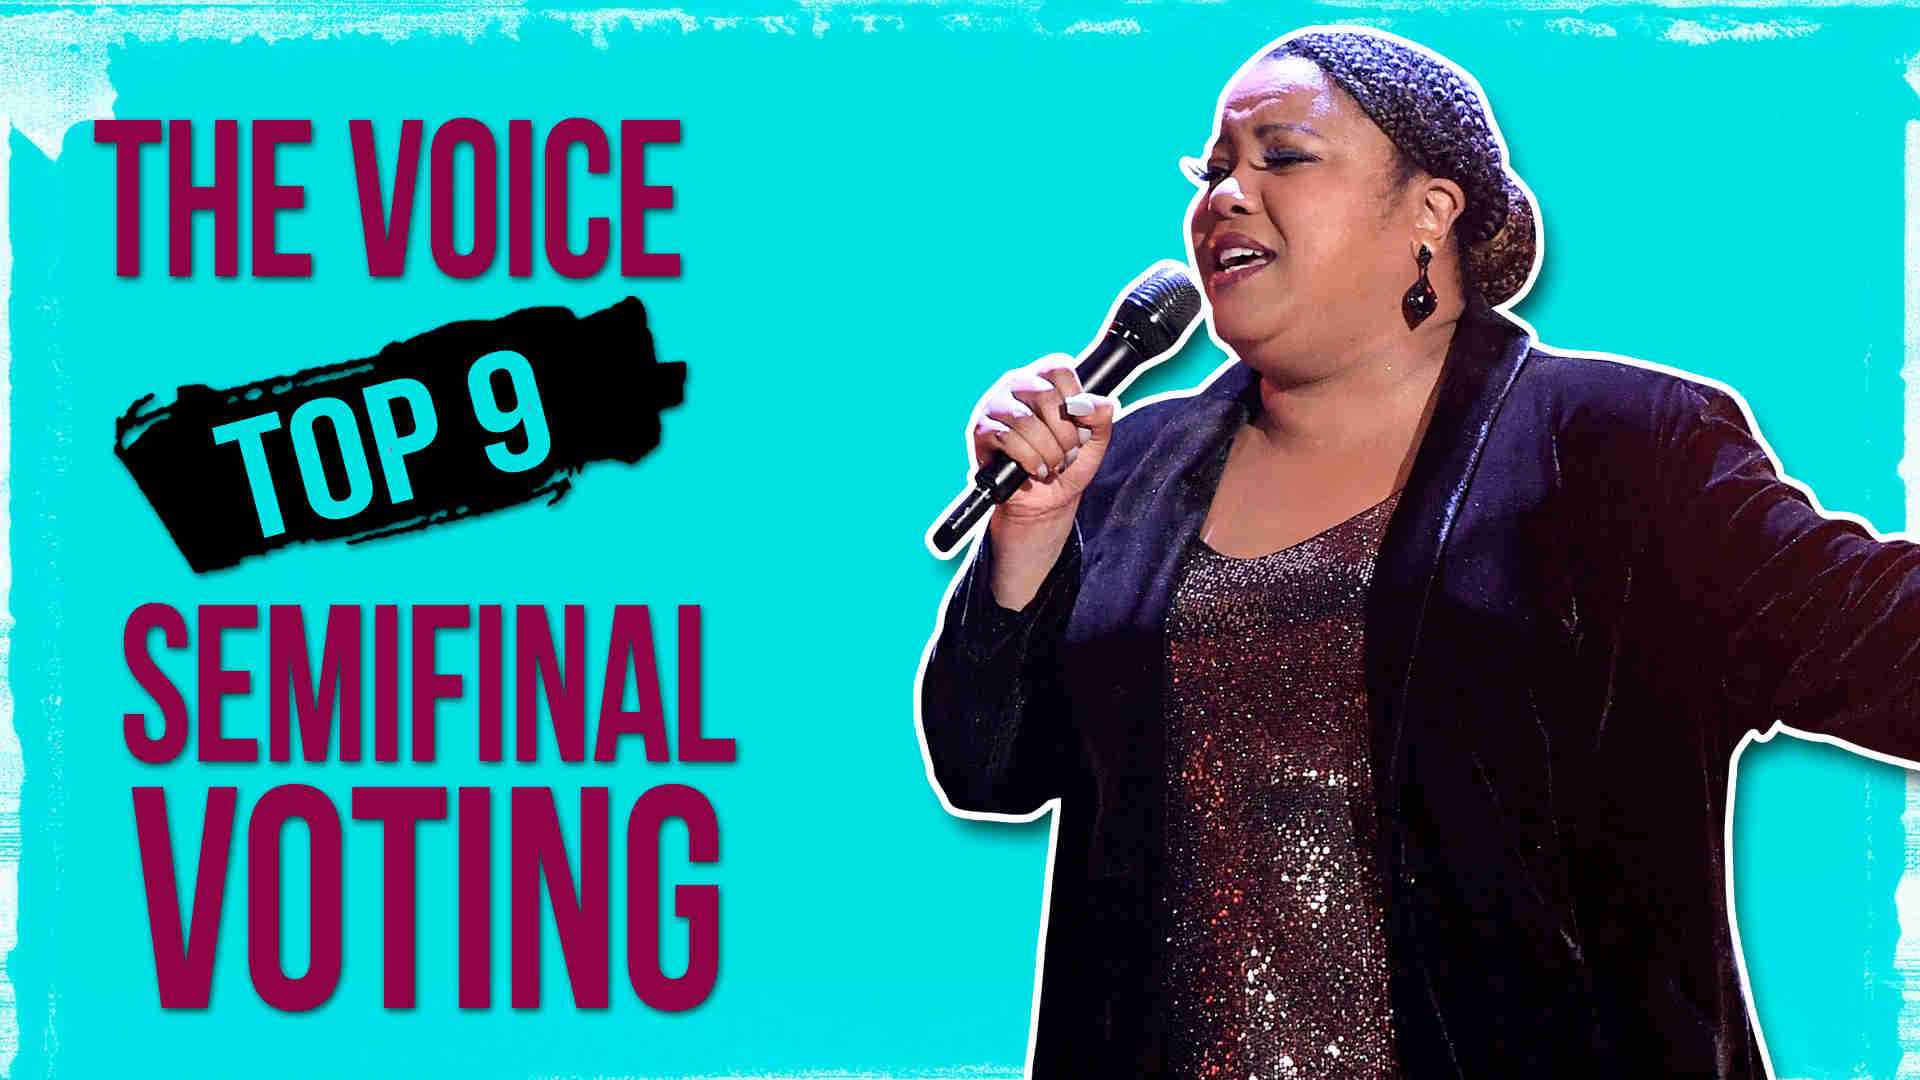 Vote Toneisha Harris The Voice 2020 Semifinals Voting Tonight on 11 May 2020